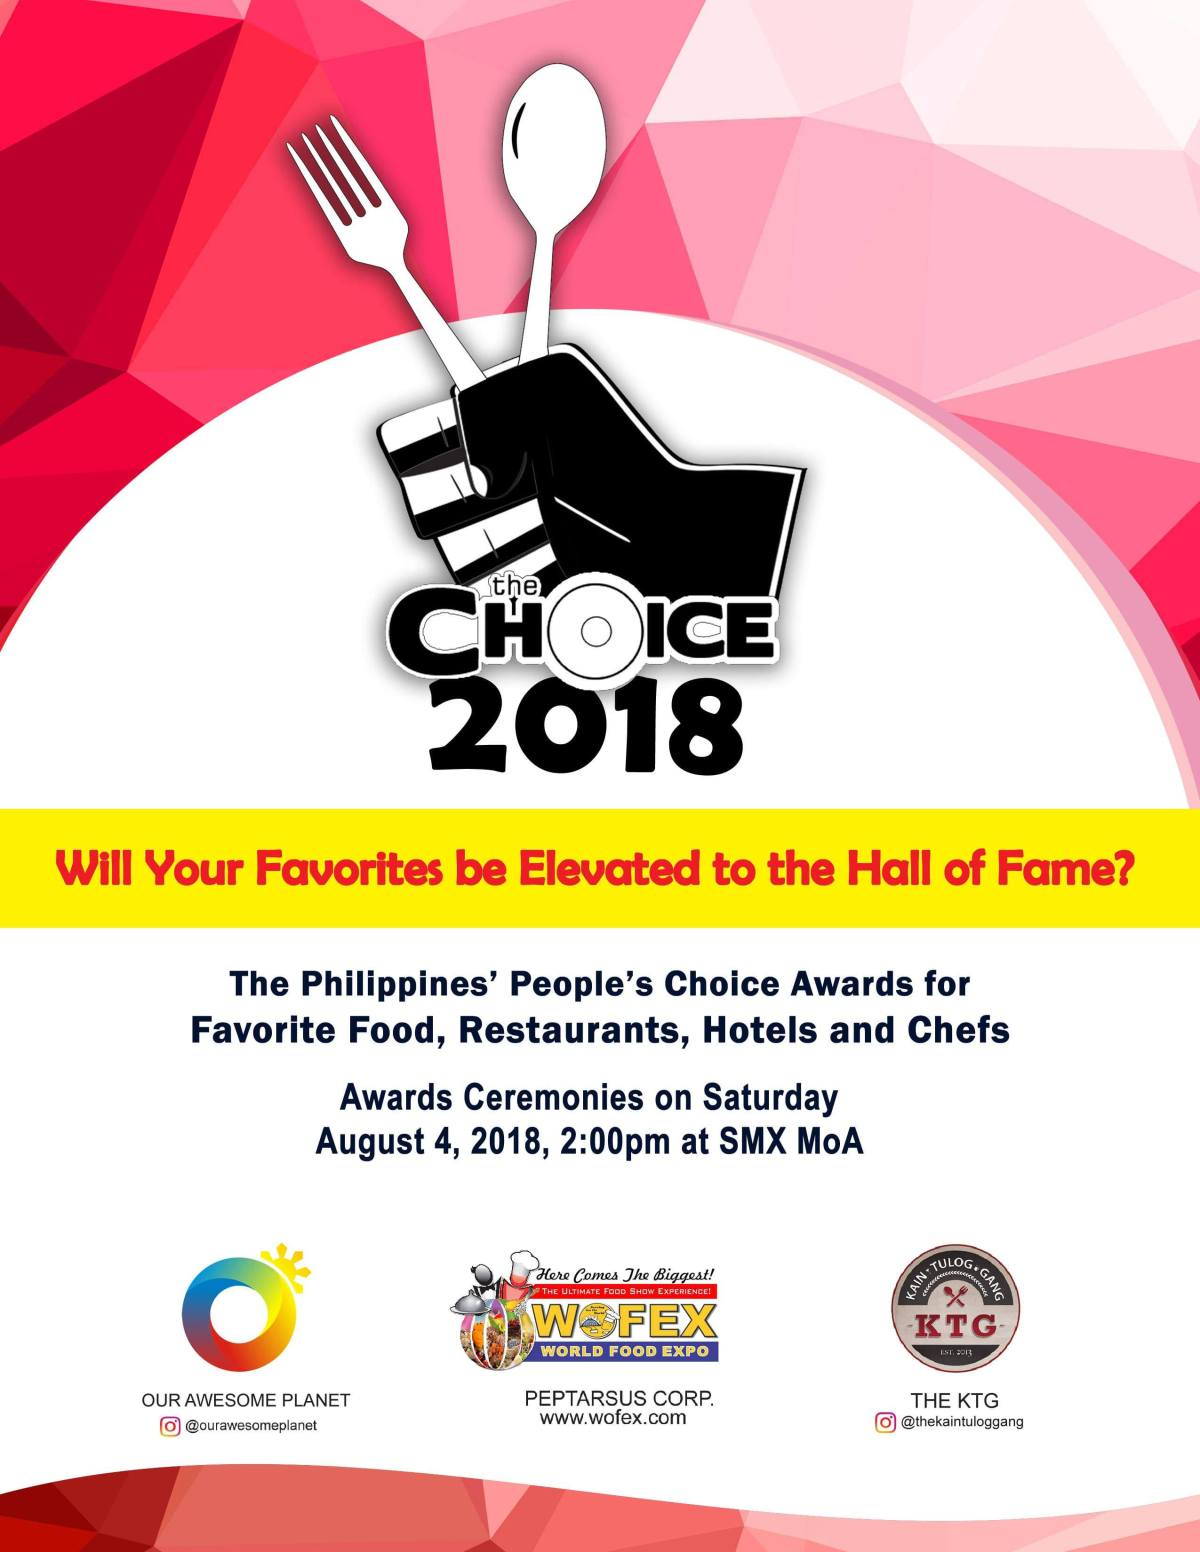 Vote for your favorites now at The Choice 2018